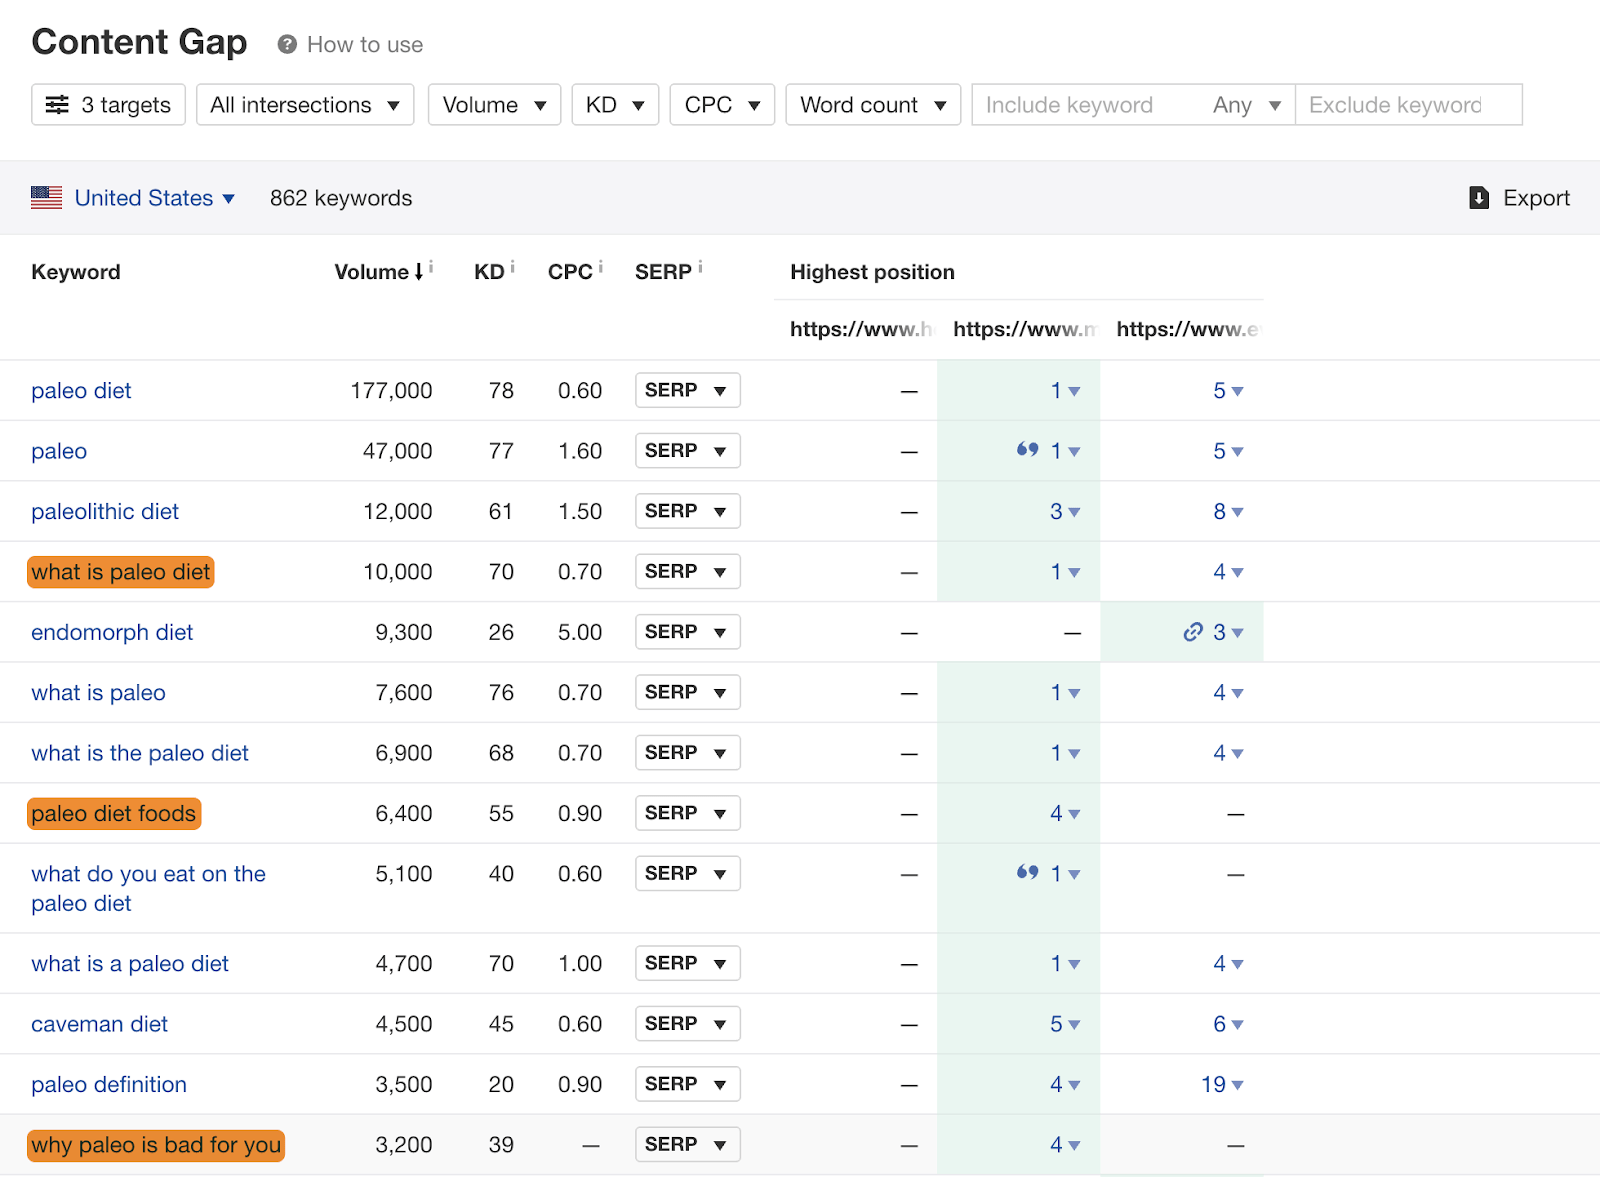 16 content gap results